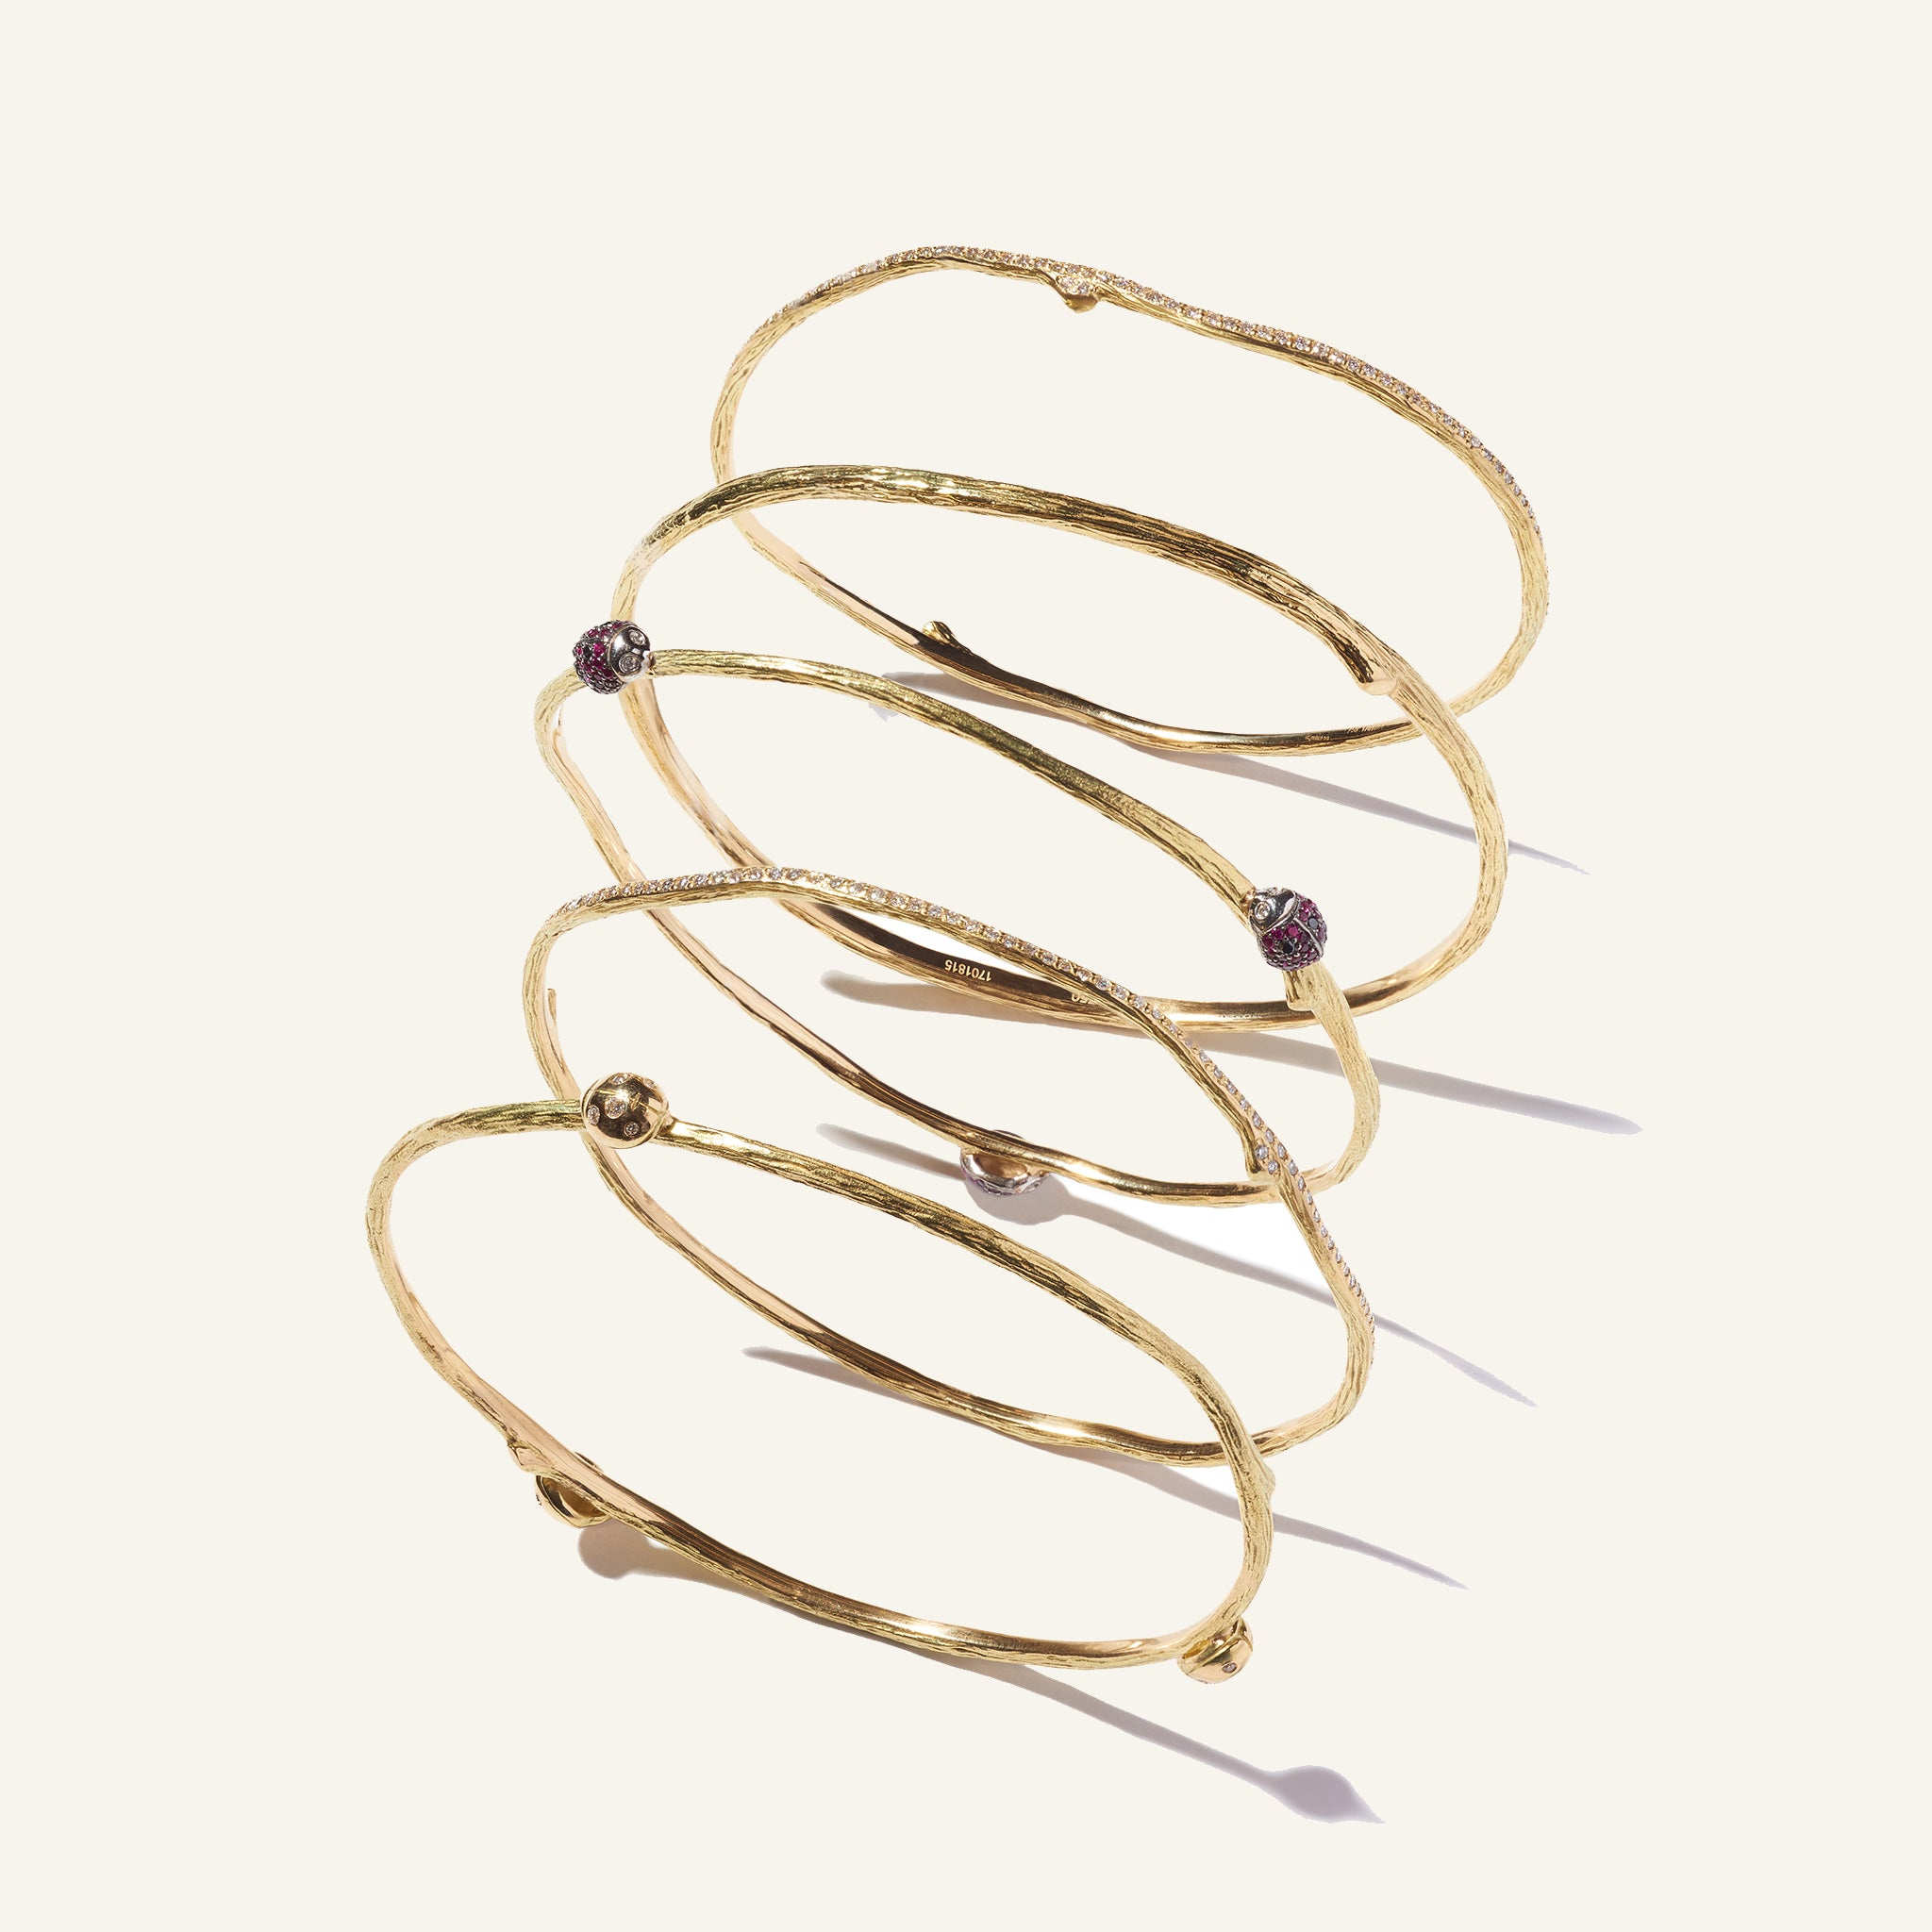 Mimi-So-Wonderland-Diamond-Twig-Bangle-Bracelets-18k-Yellow-Gold